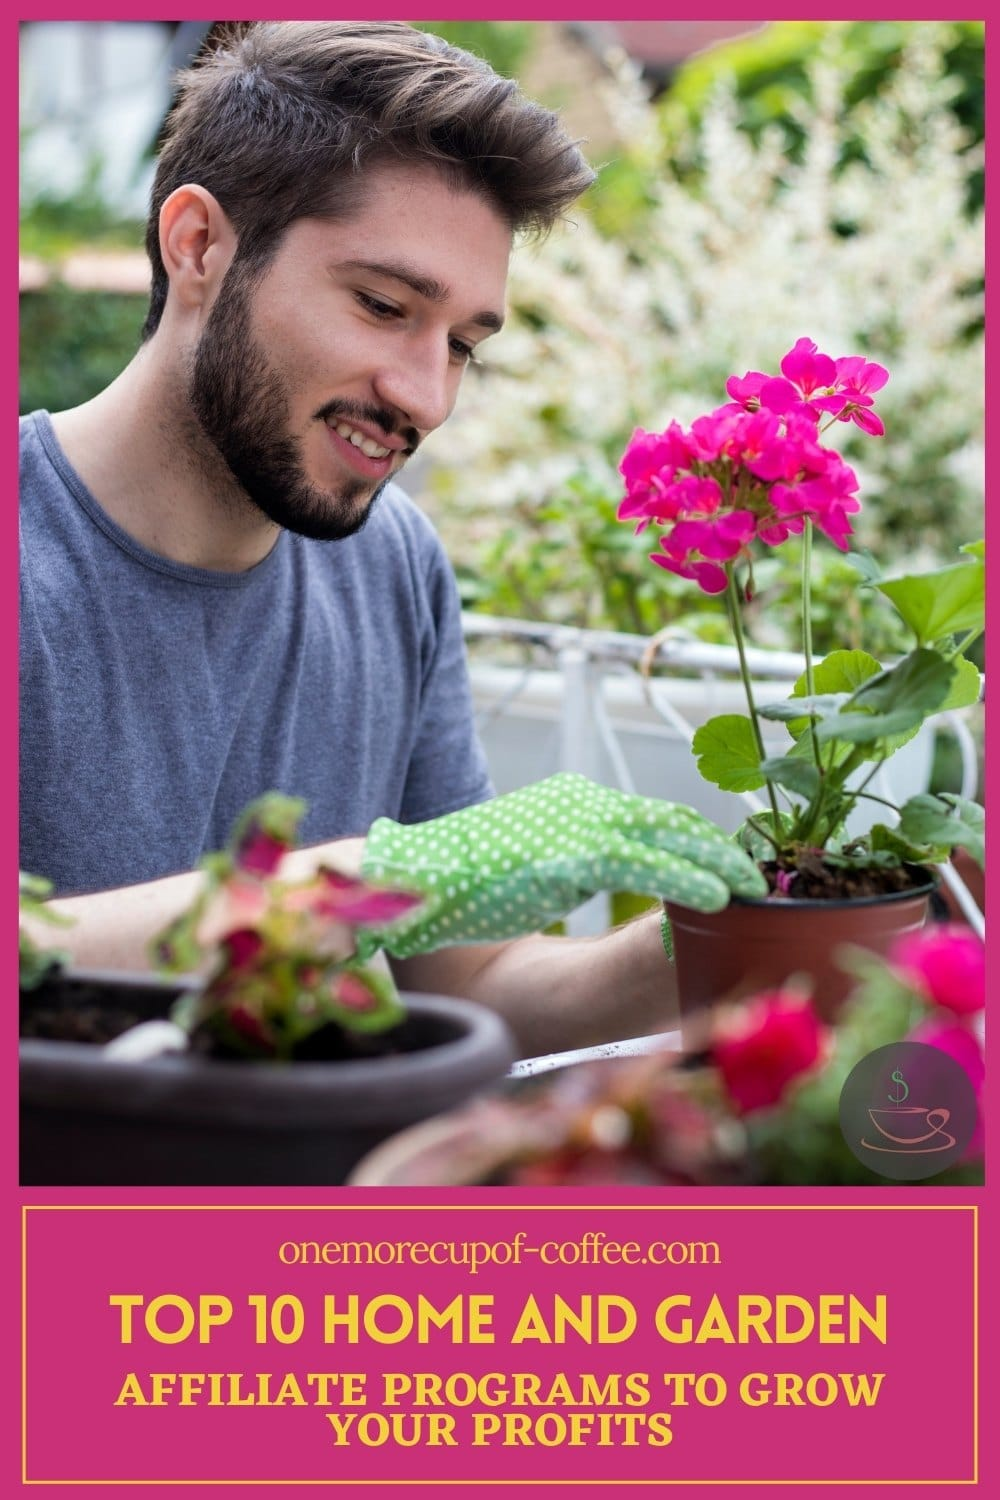 """bearded man tending to his potted plants with text overlay in pink background """"Top 10 Home and Garden Affiliate Programs To Grow Your Profits"""""""